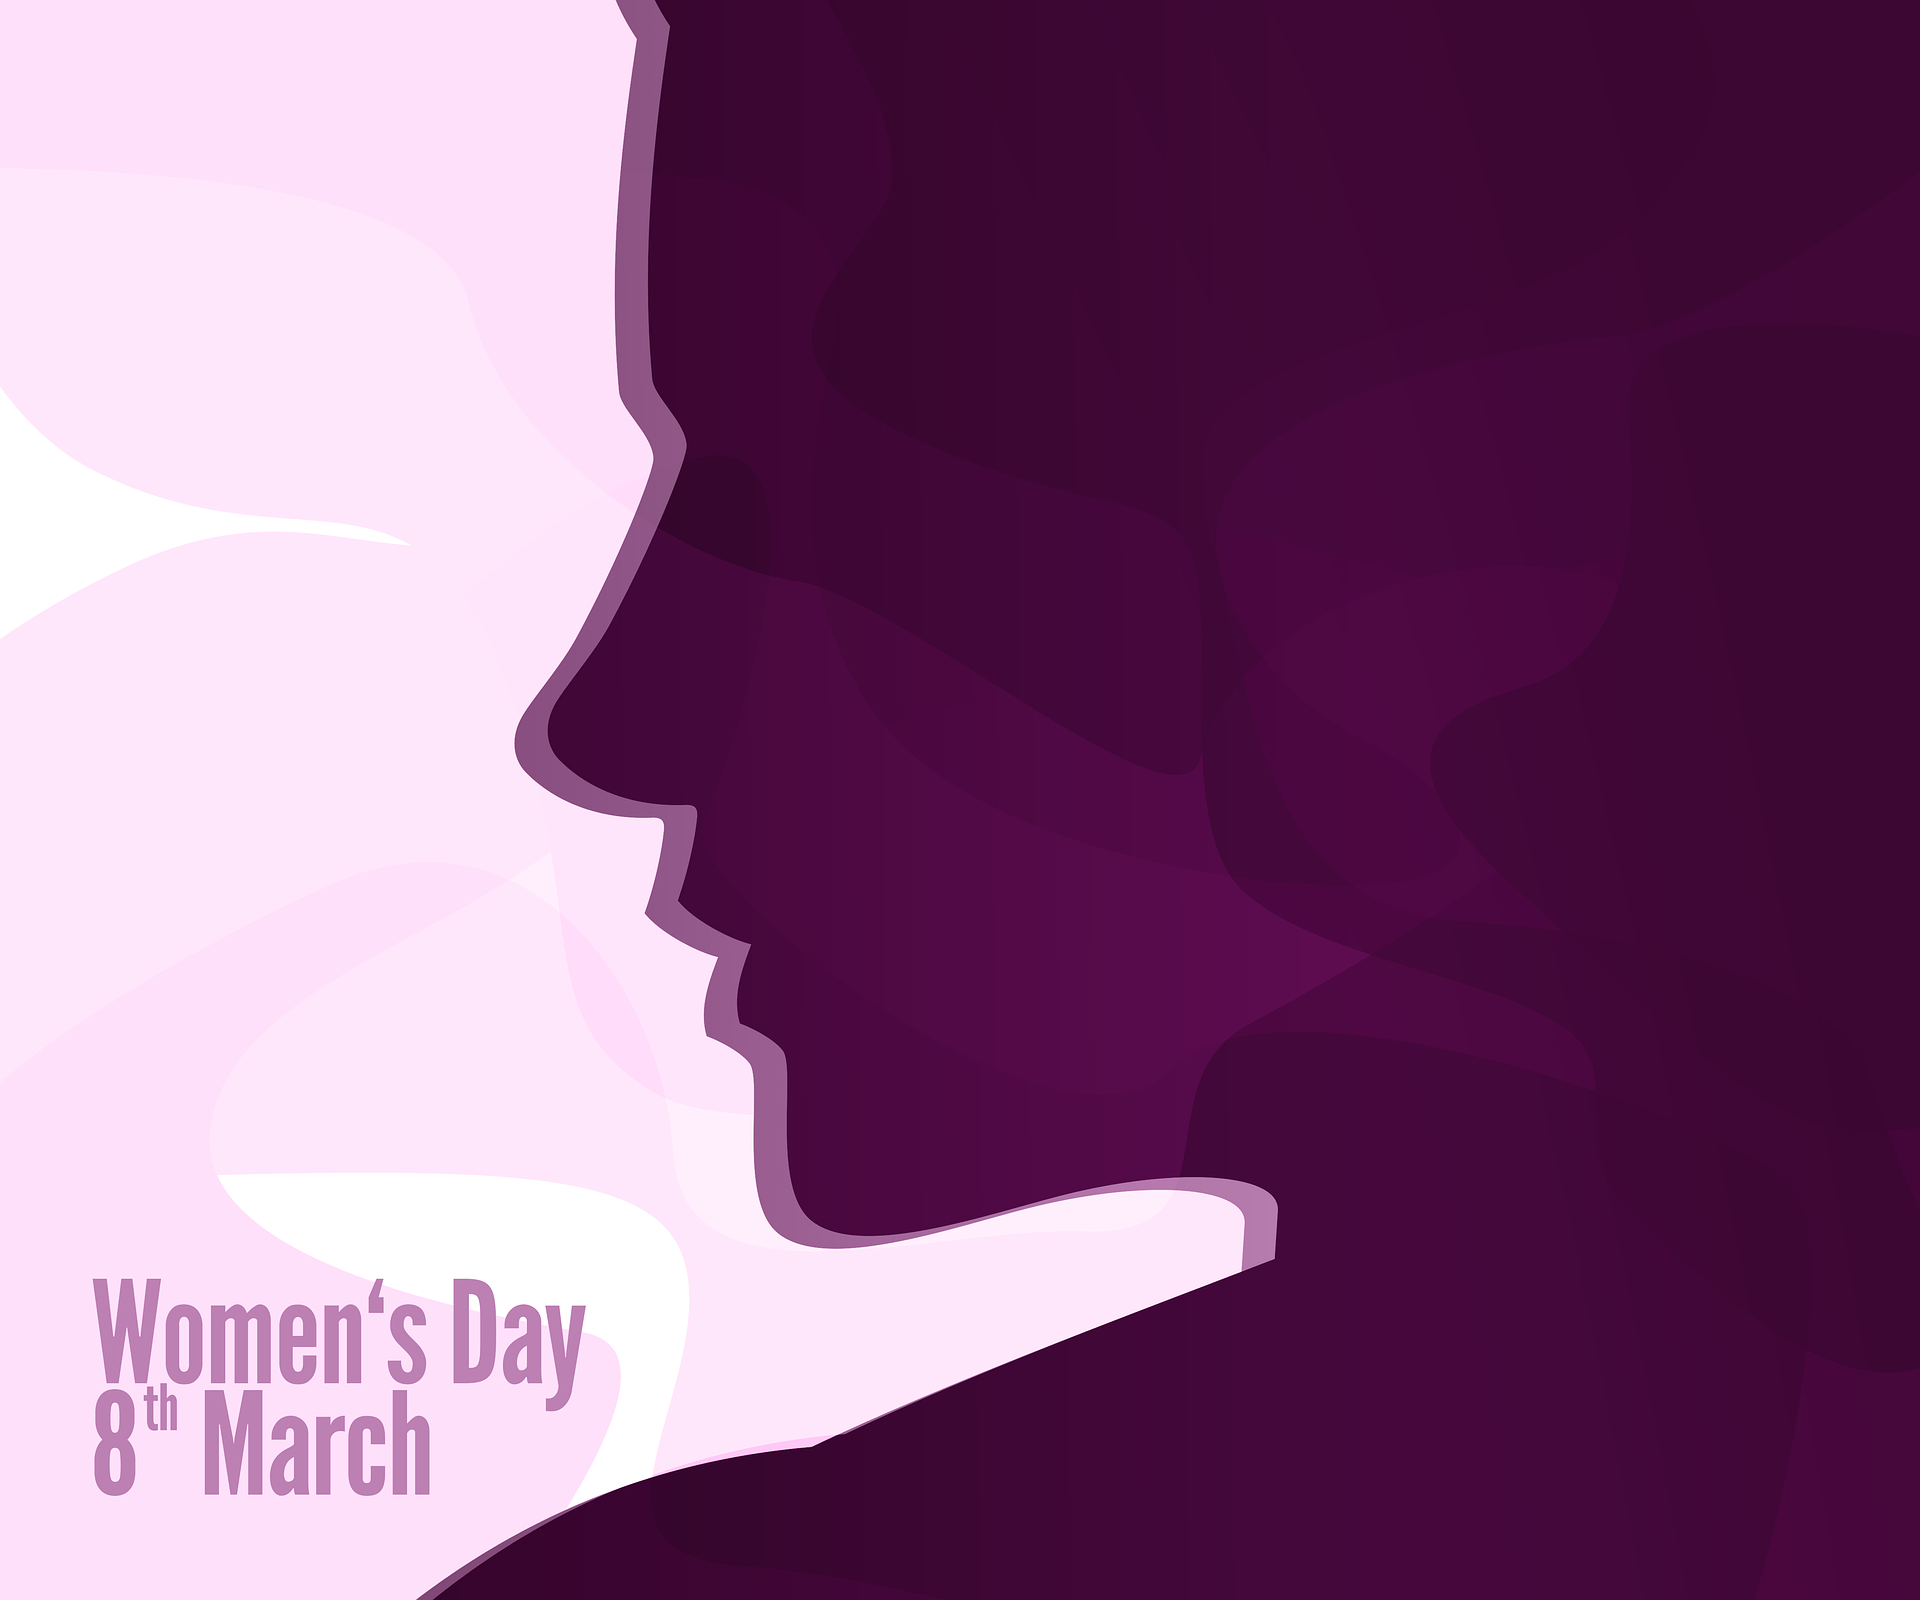 womens-day-3198005_1920.png